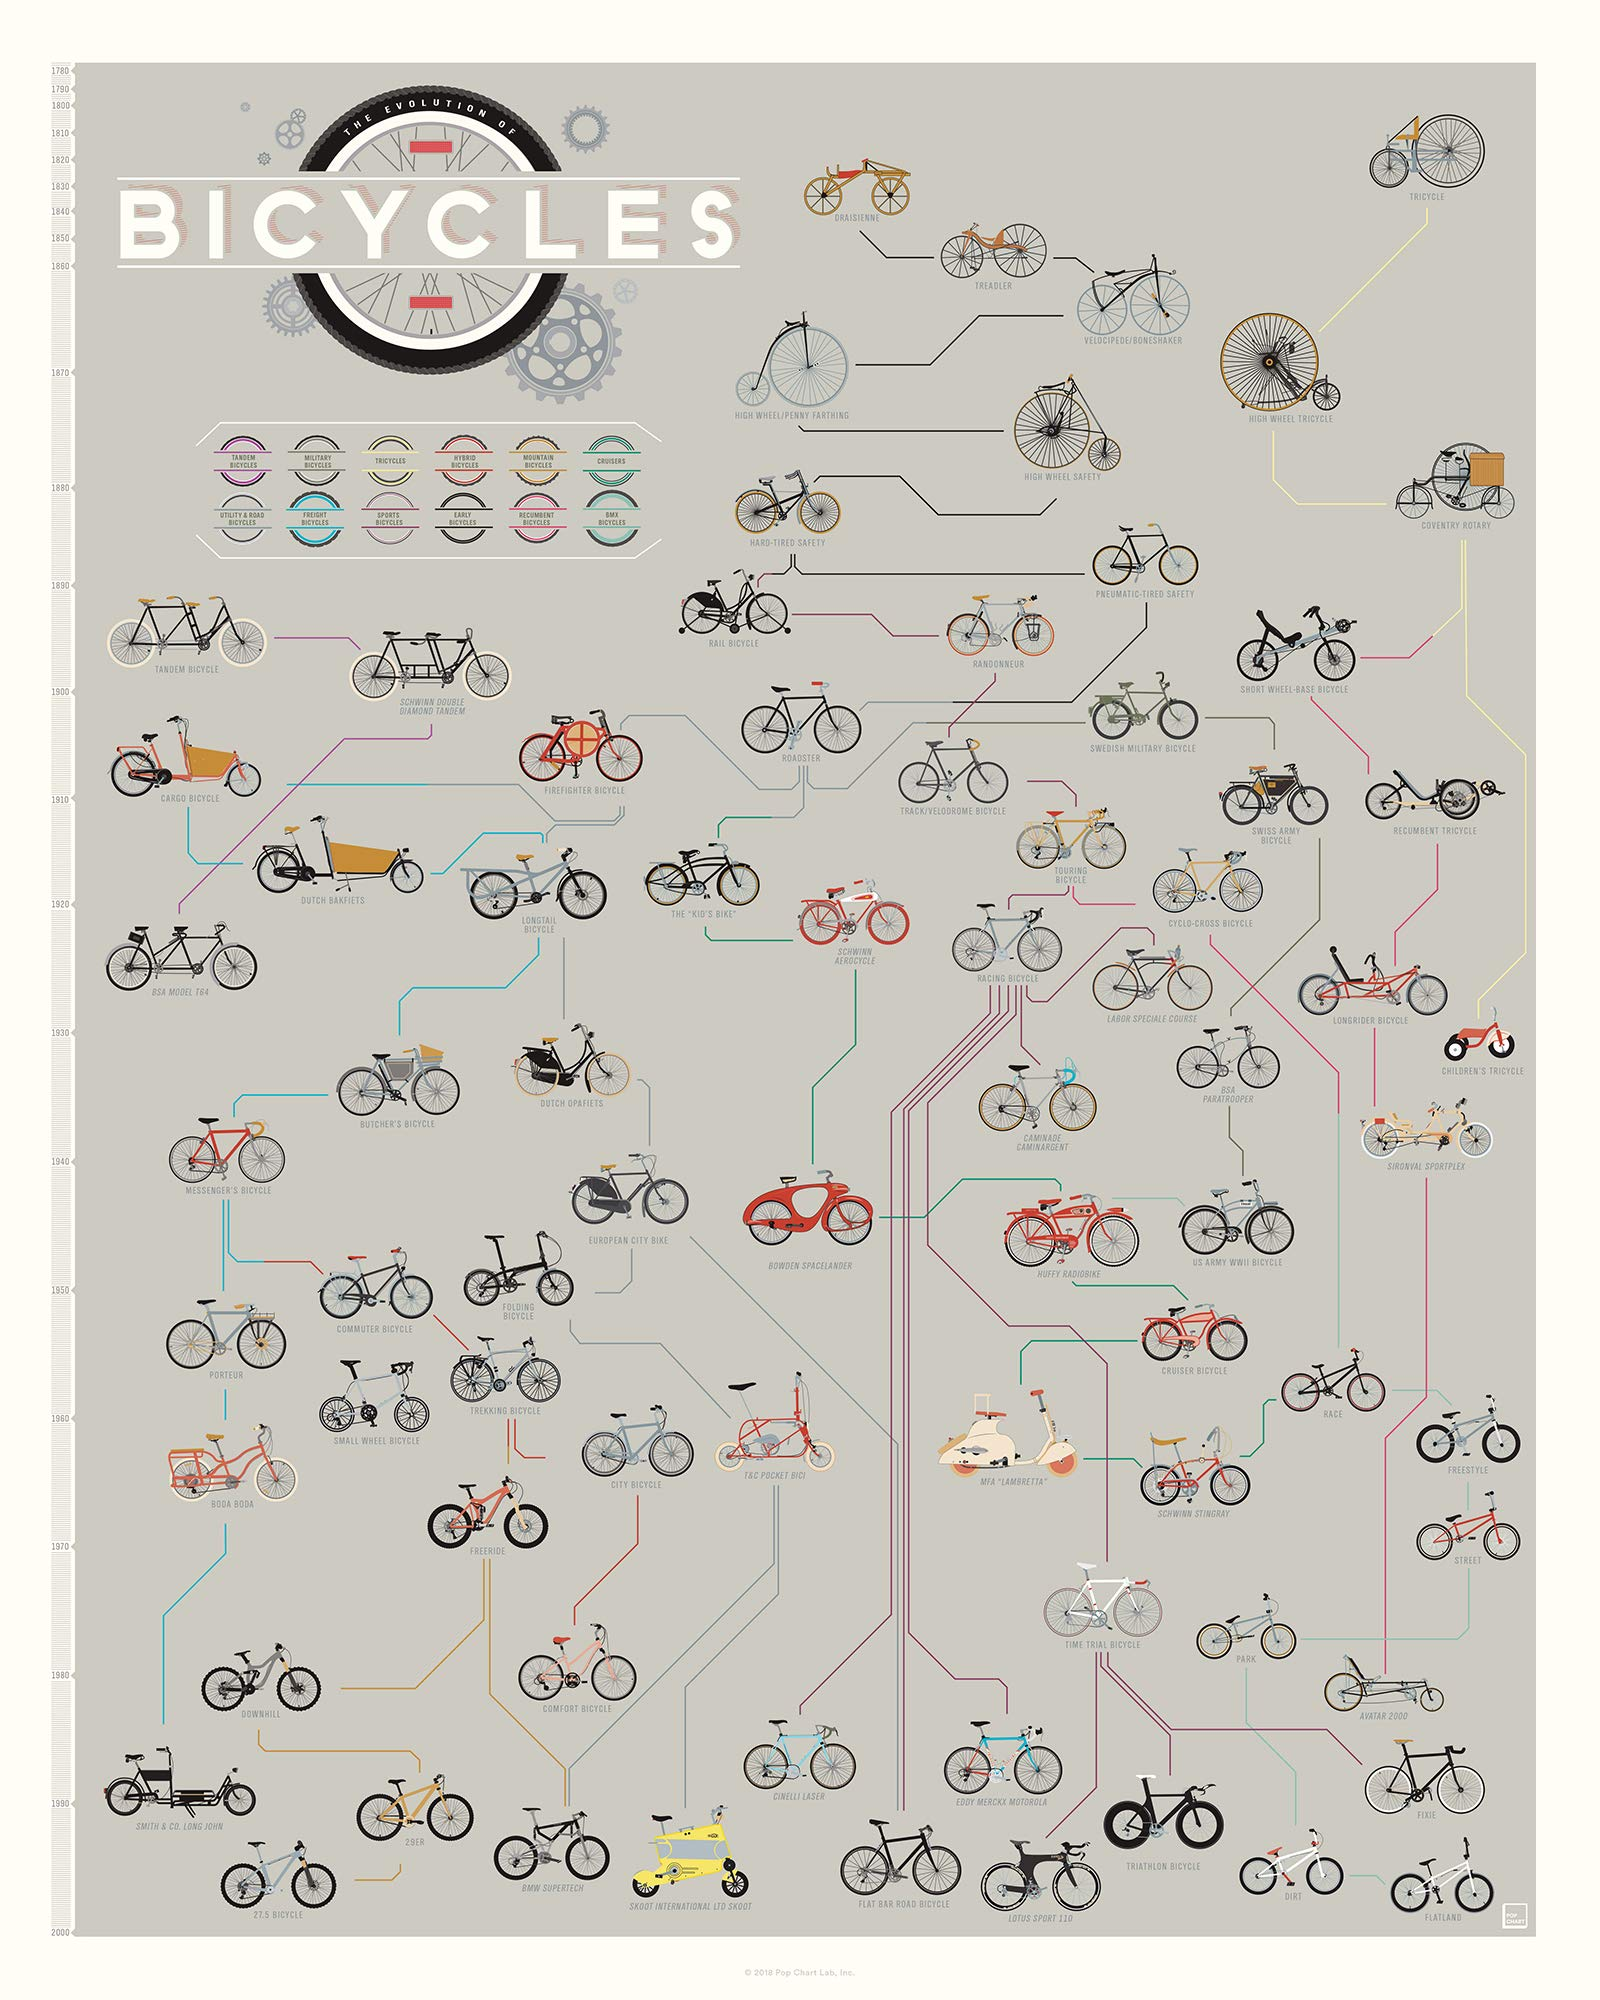 Pop Chart: Poster Prints (16x20) - Bicycle Infographic - Printed on Archival Stock - Features Fun Facts About Your Favorite Things